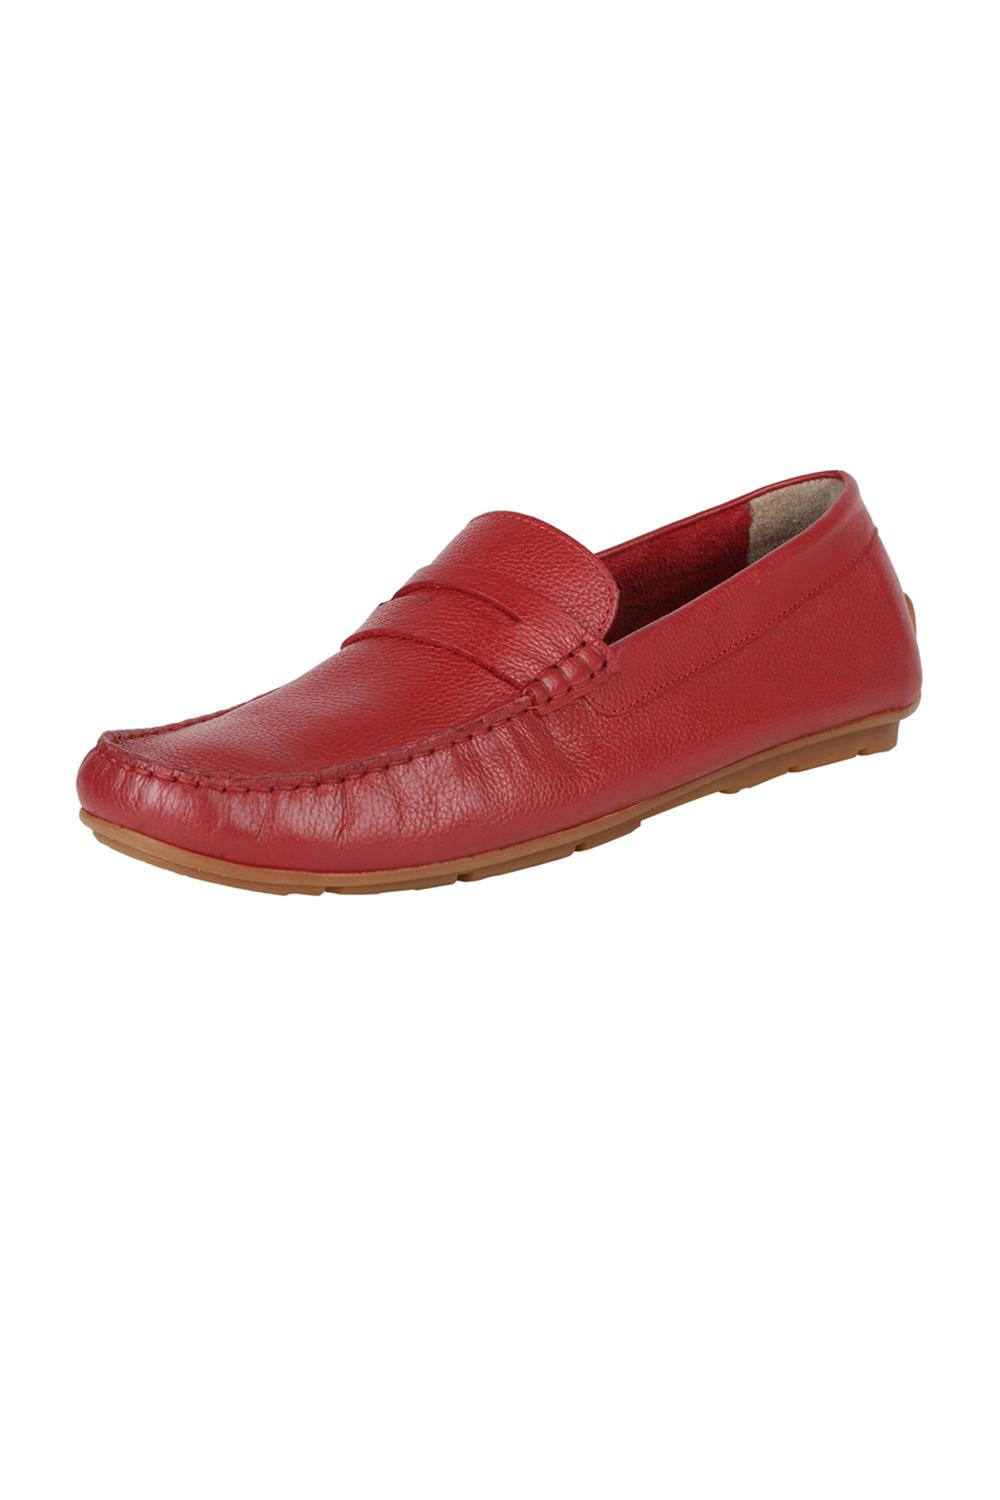 Allen Solly Red Loafers